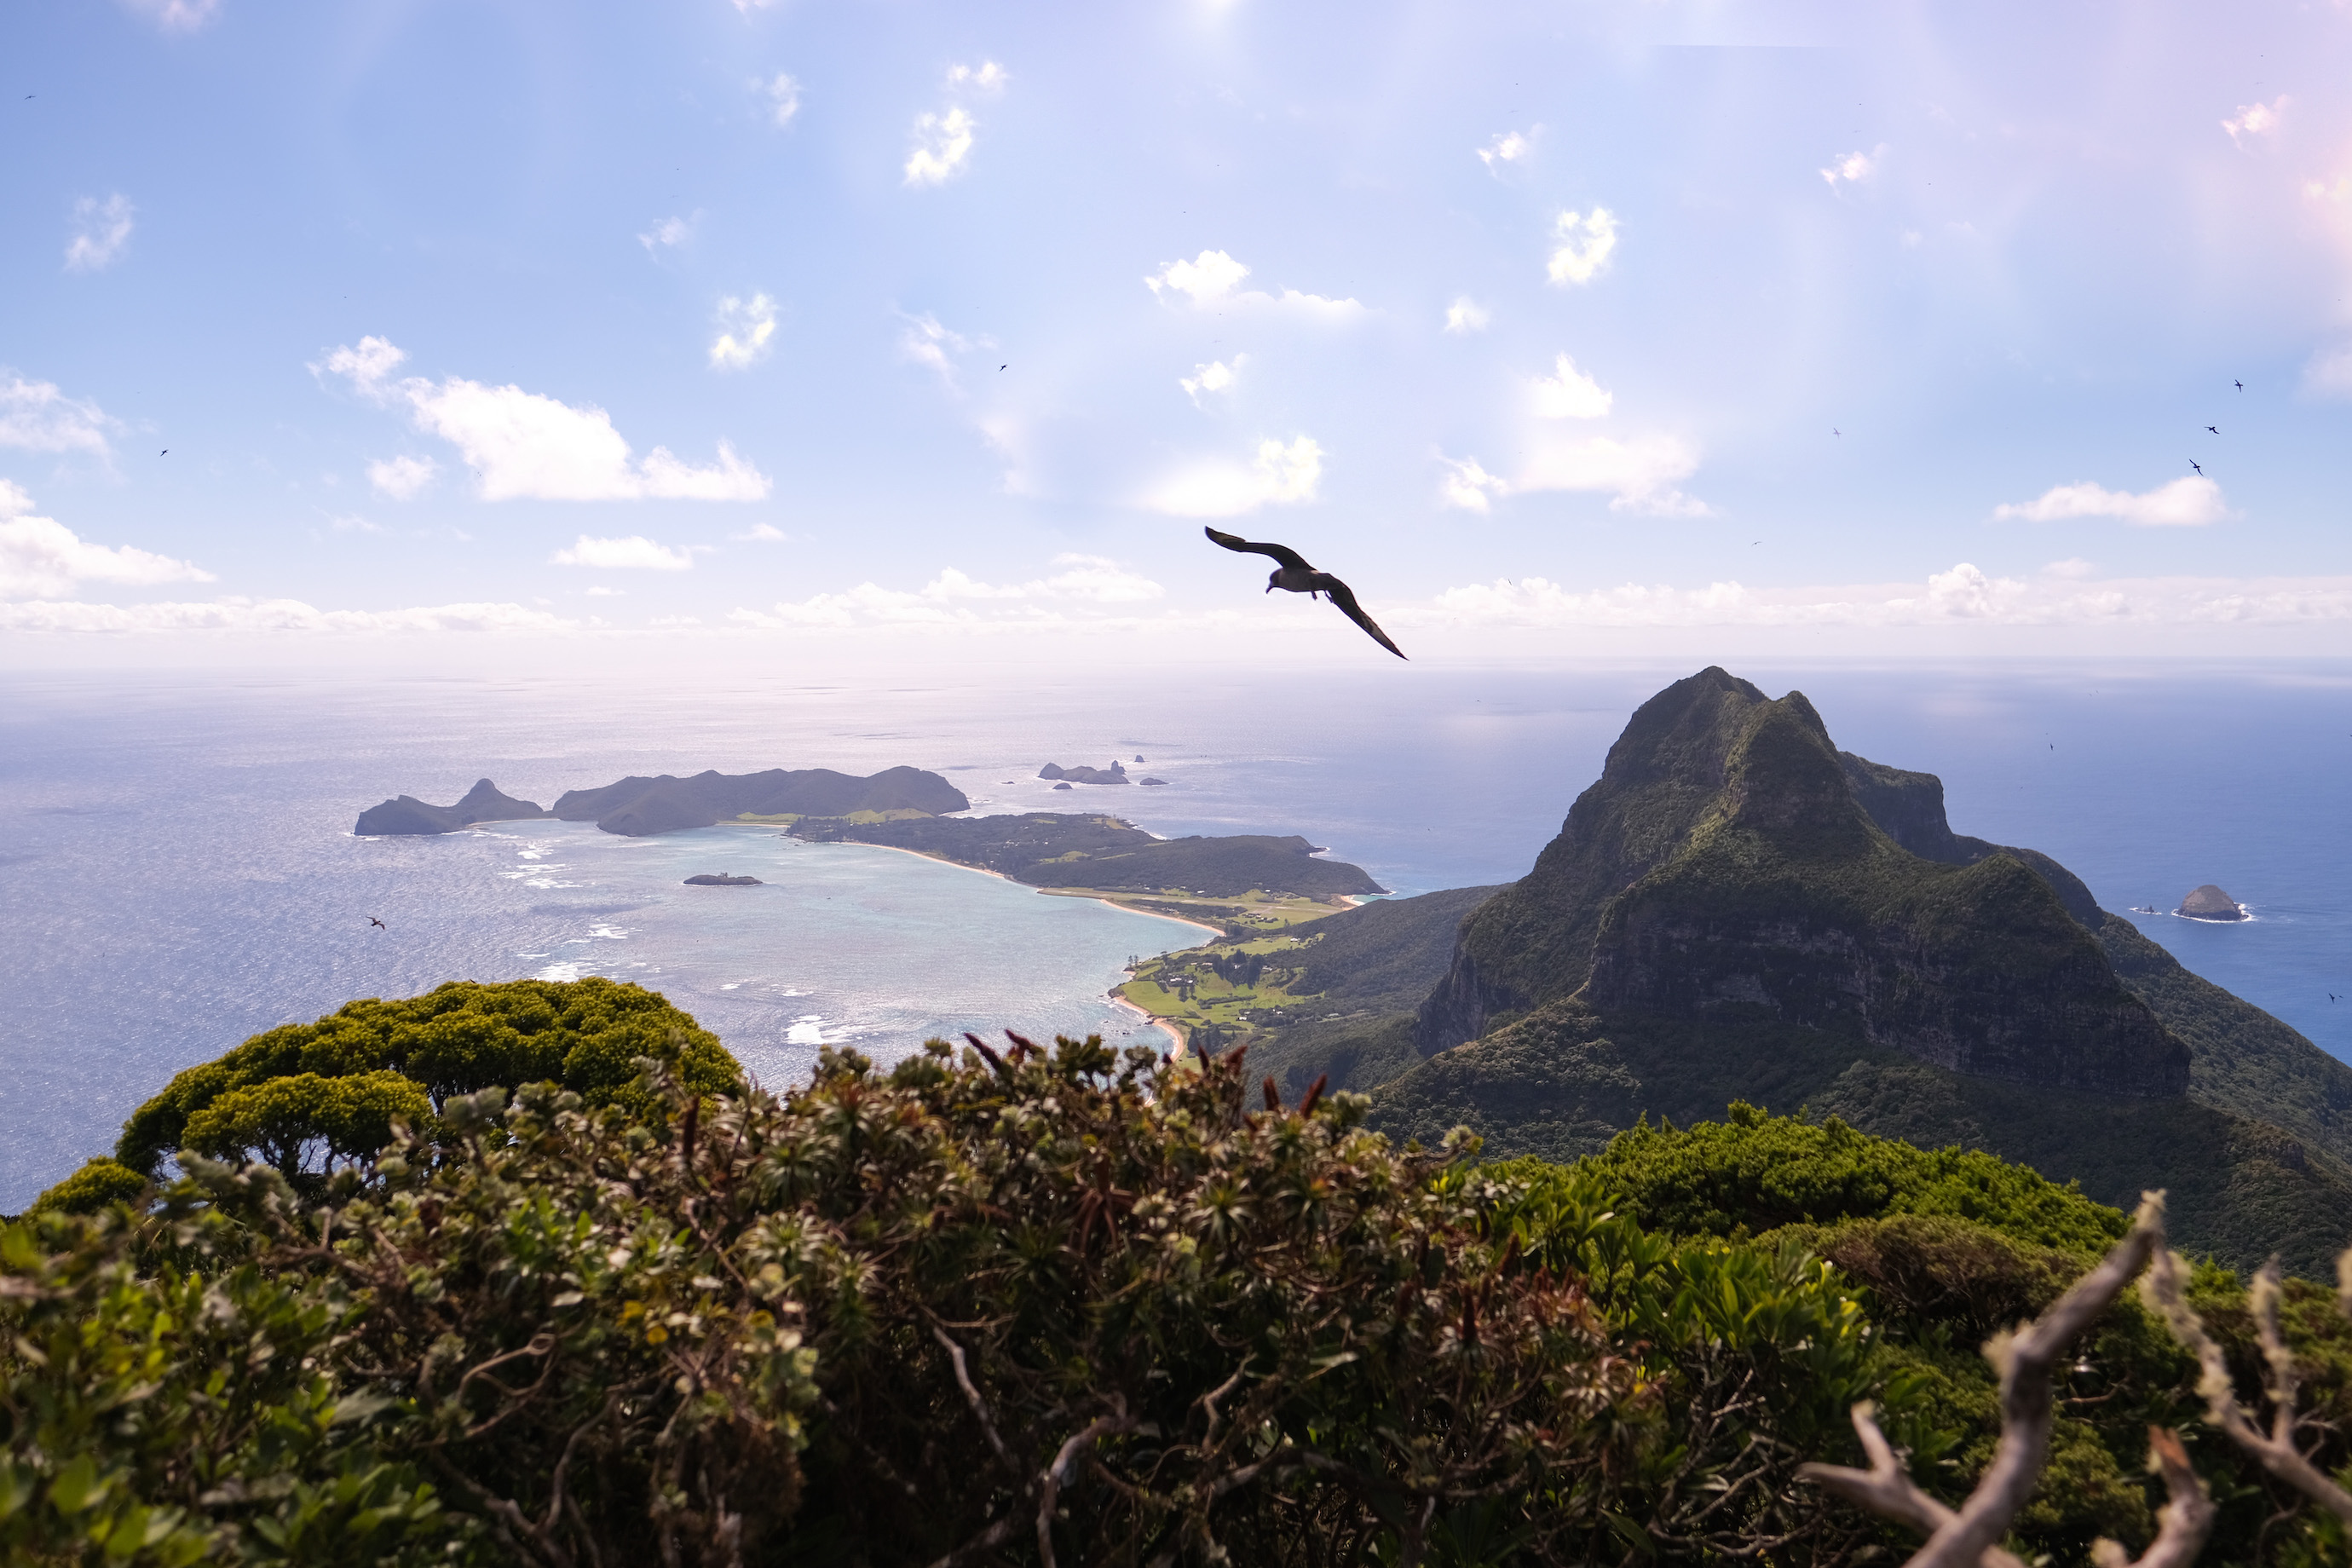 Looking back across the island from the summit of Mt. Gower